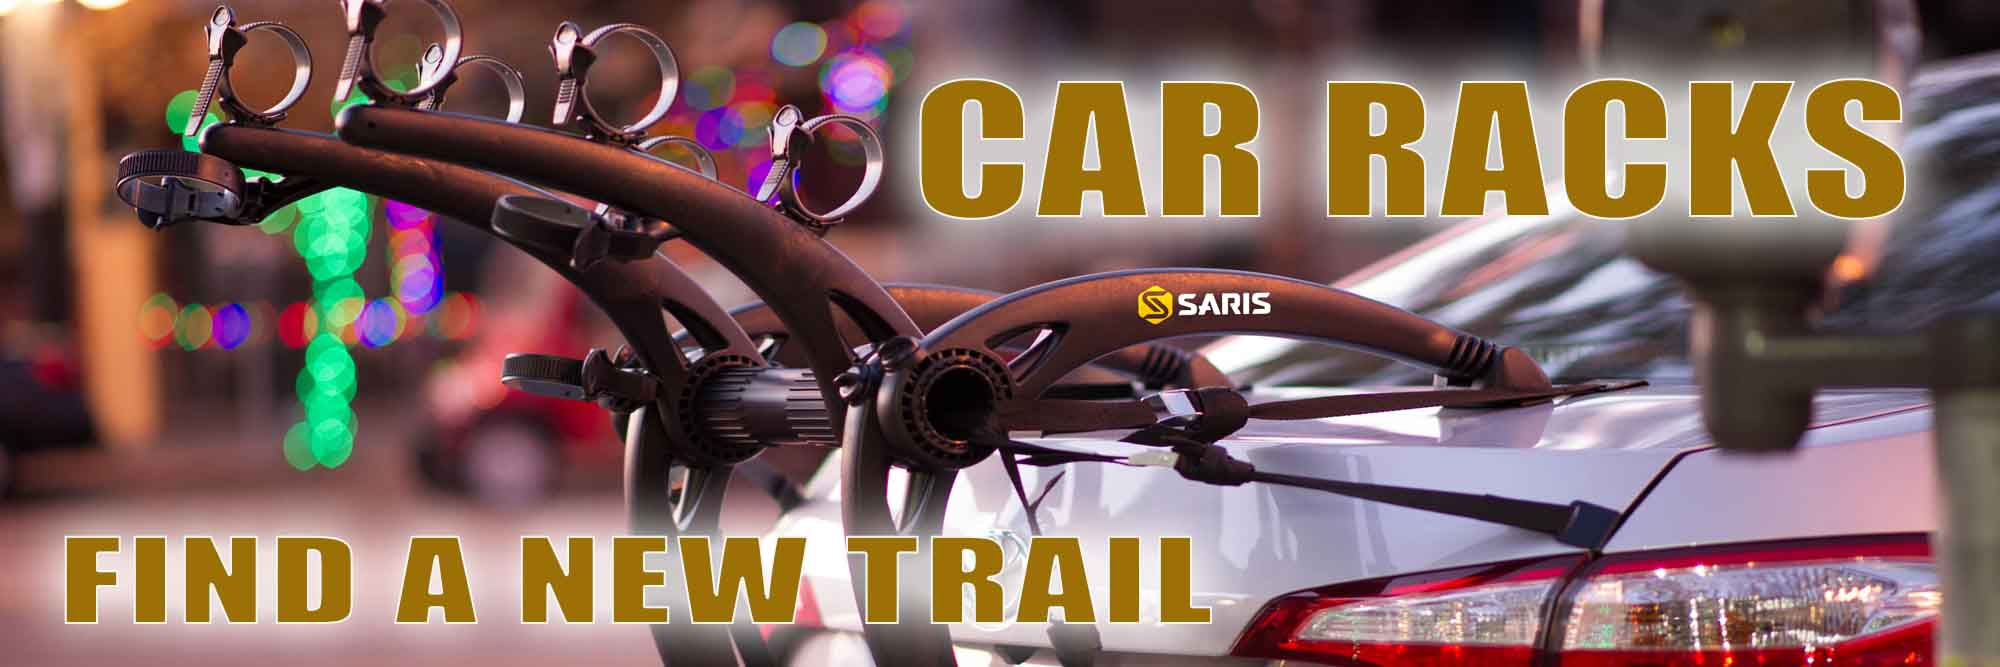 Find a New Trail - Car Racks In-Stock